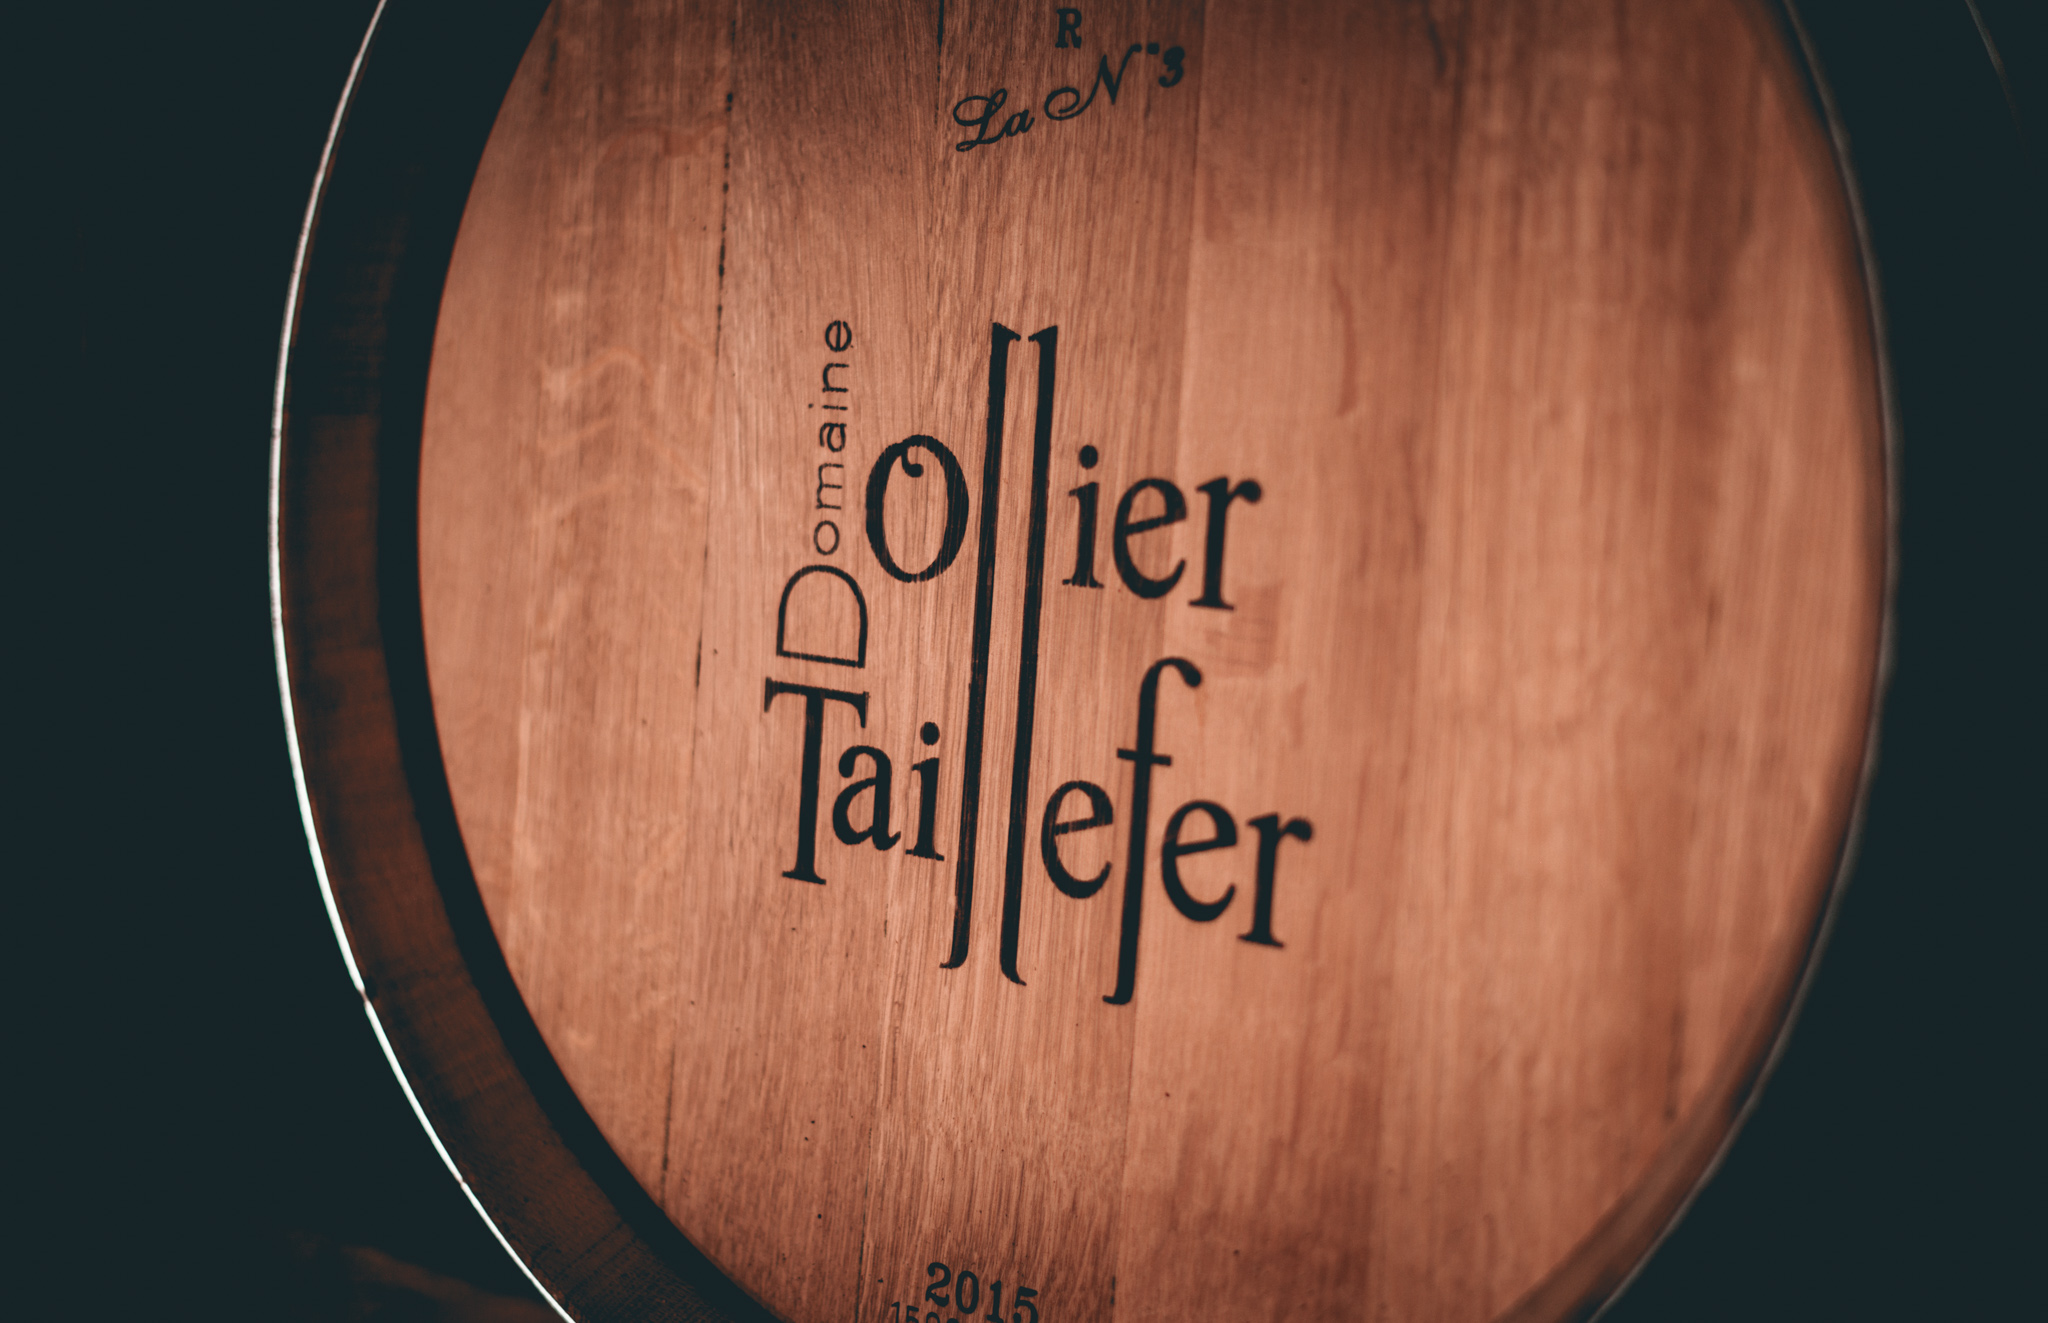 France : Languedoc : Domaine Ollier Taillefer in Faugeres